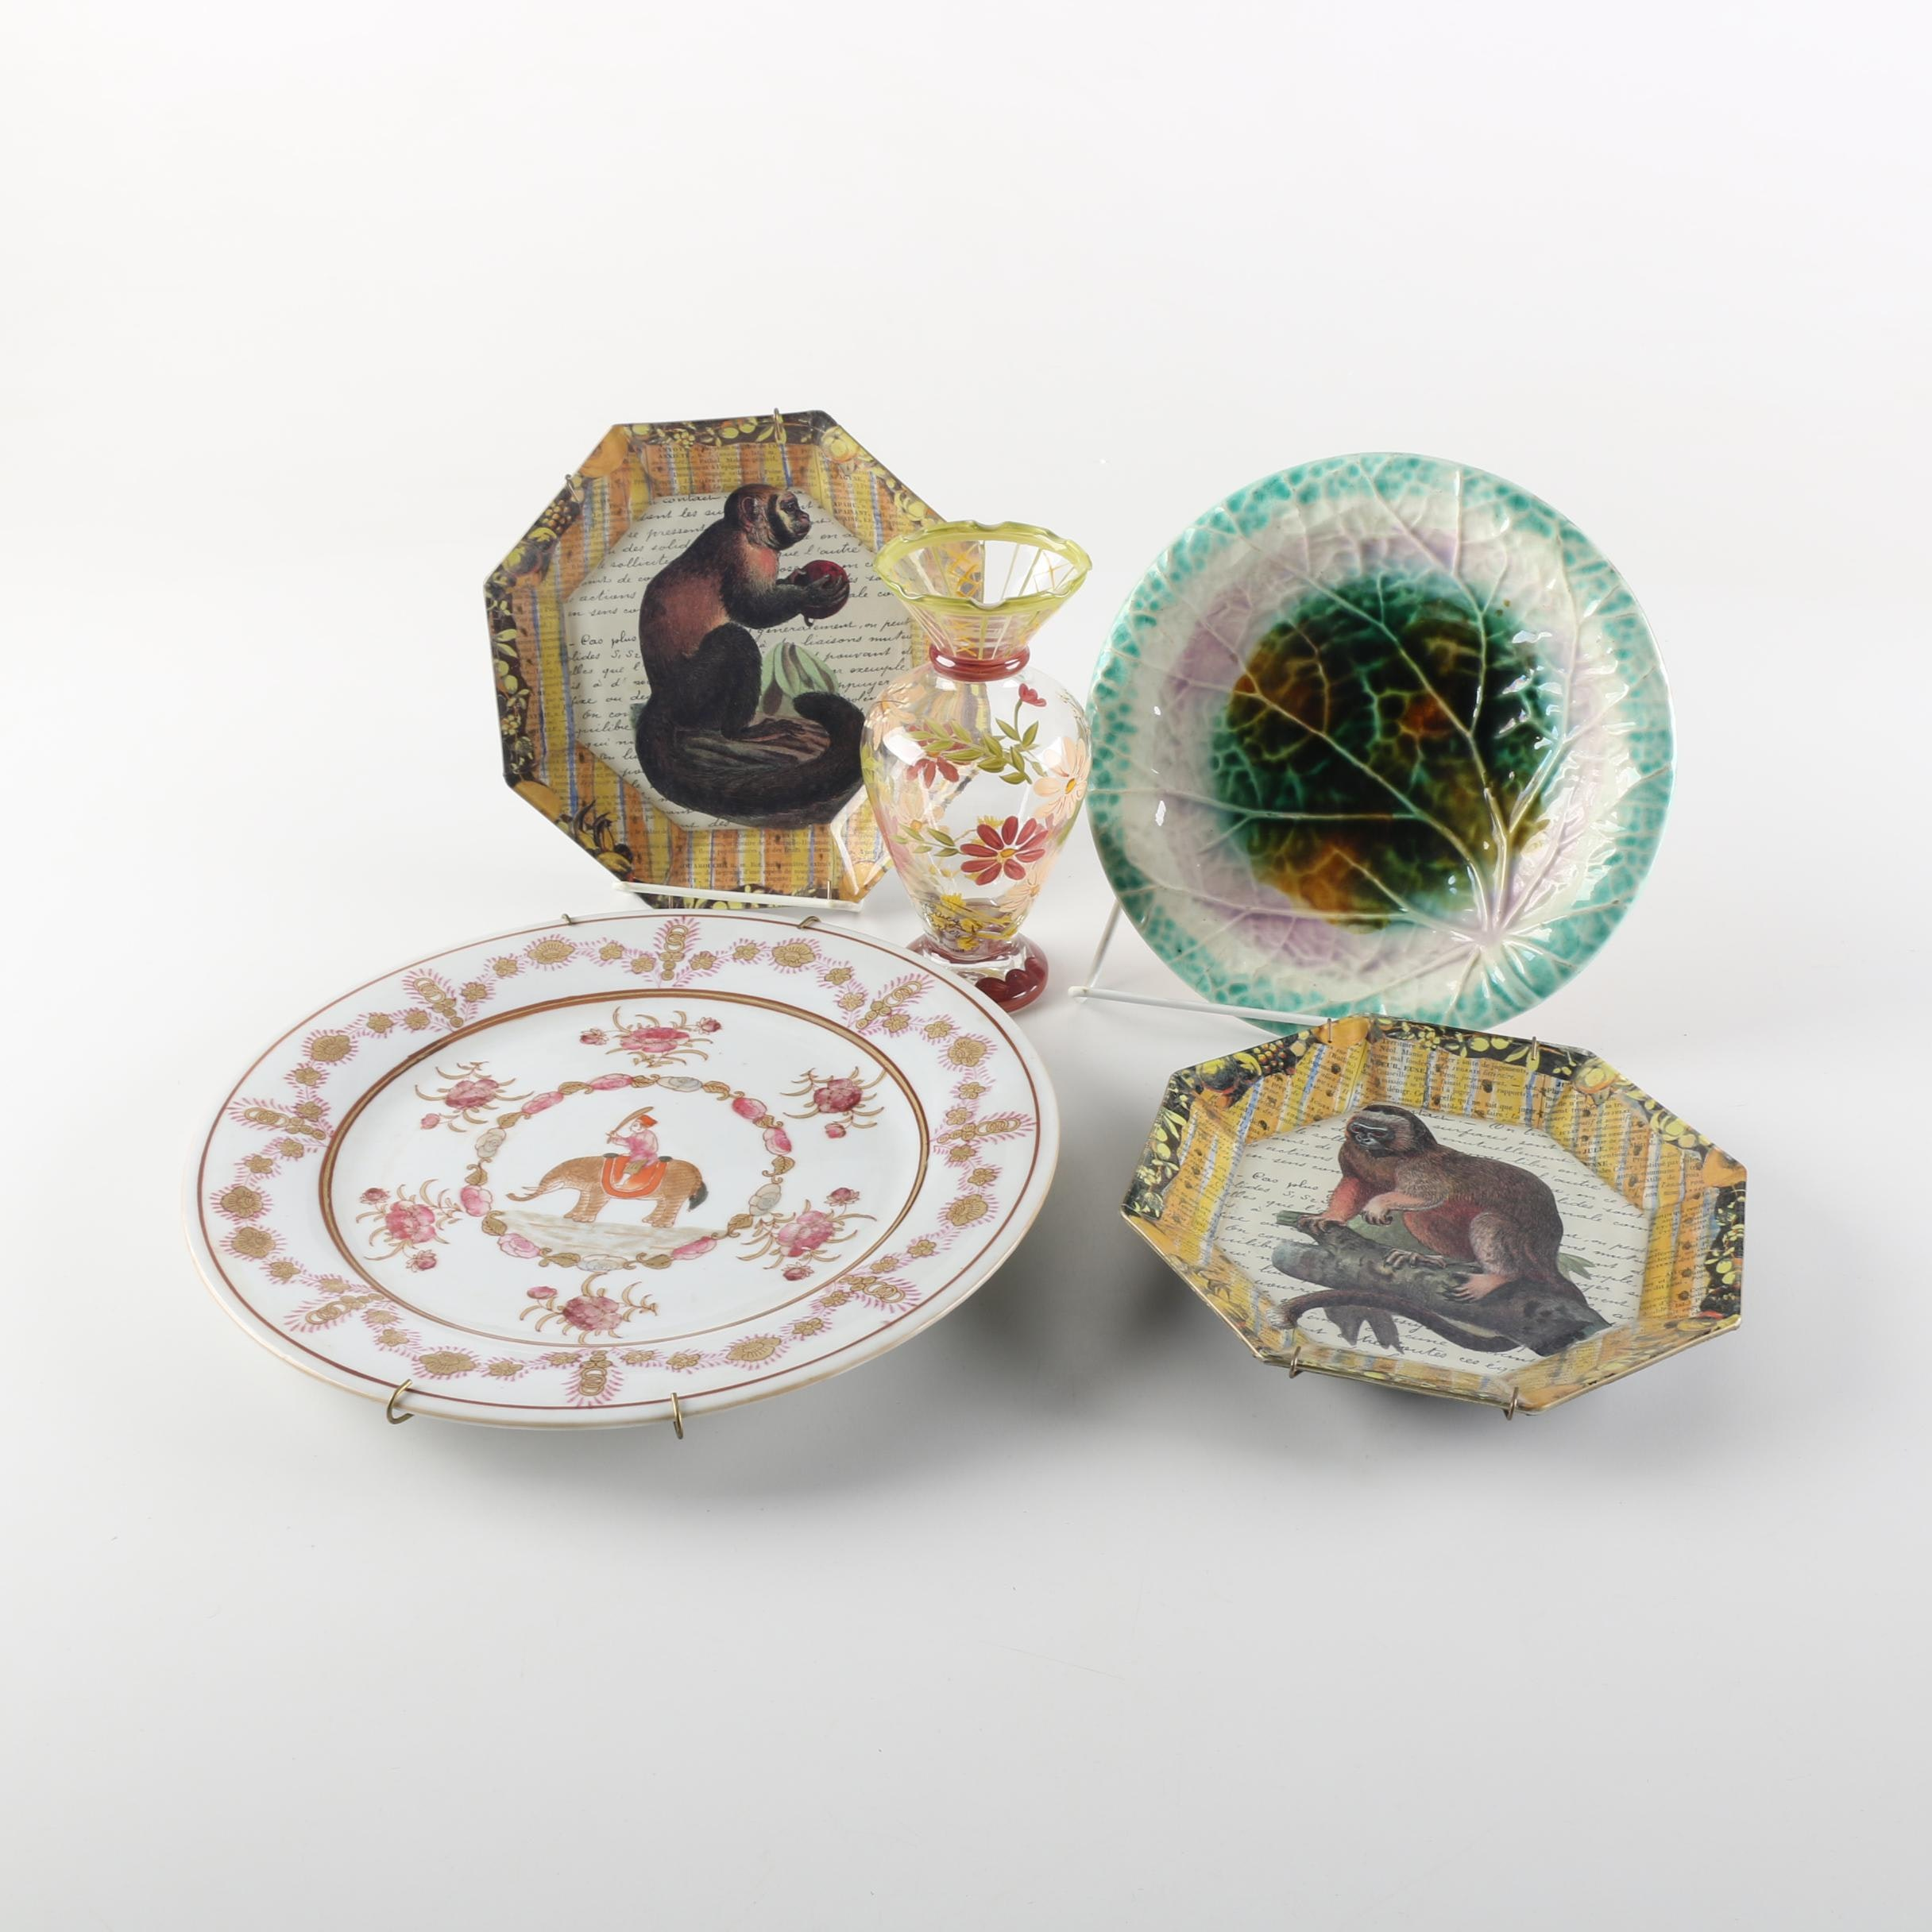 Signed John Derian Plates with Late 19th Century Victorian Majolica Plate